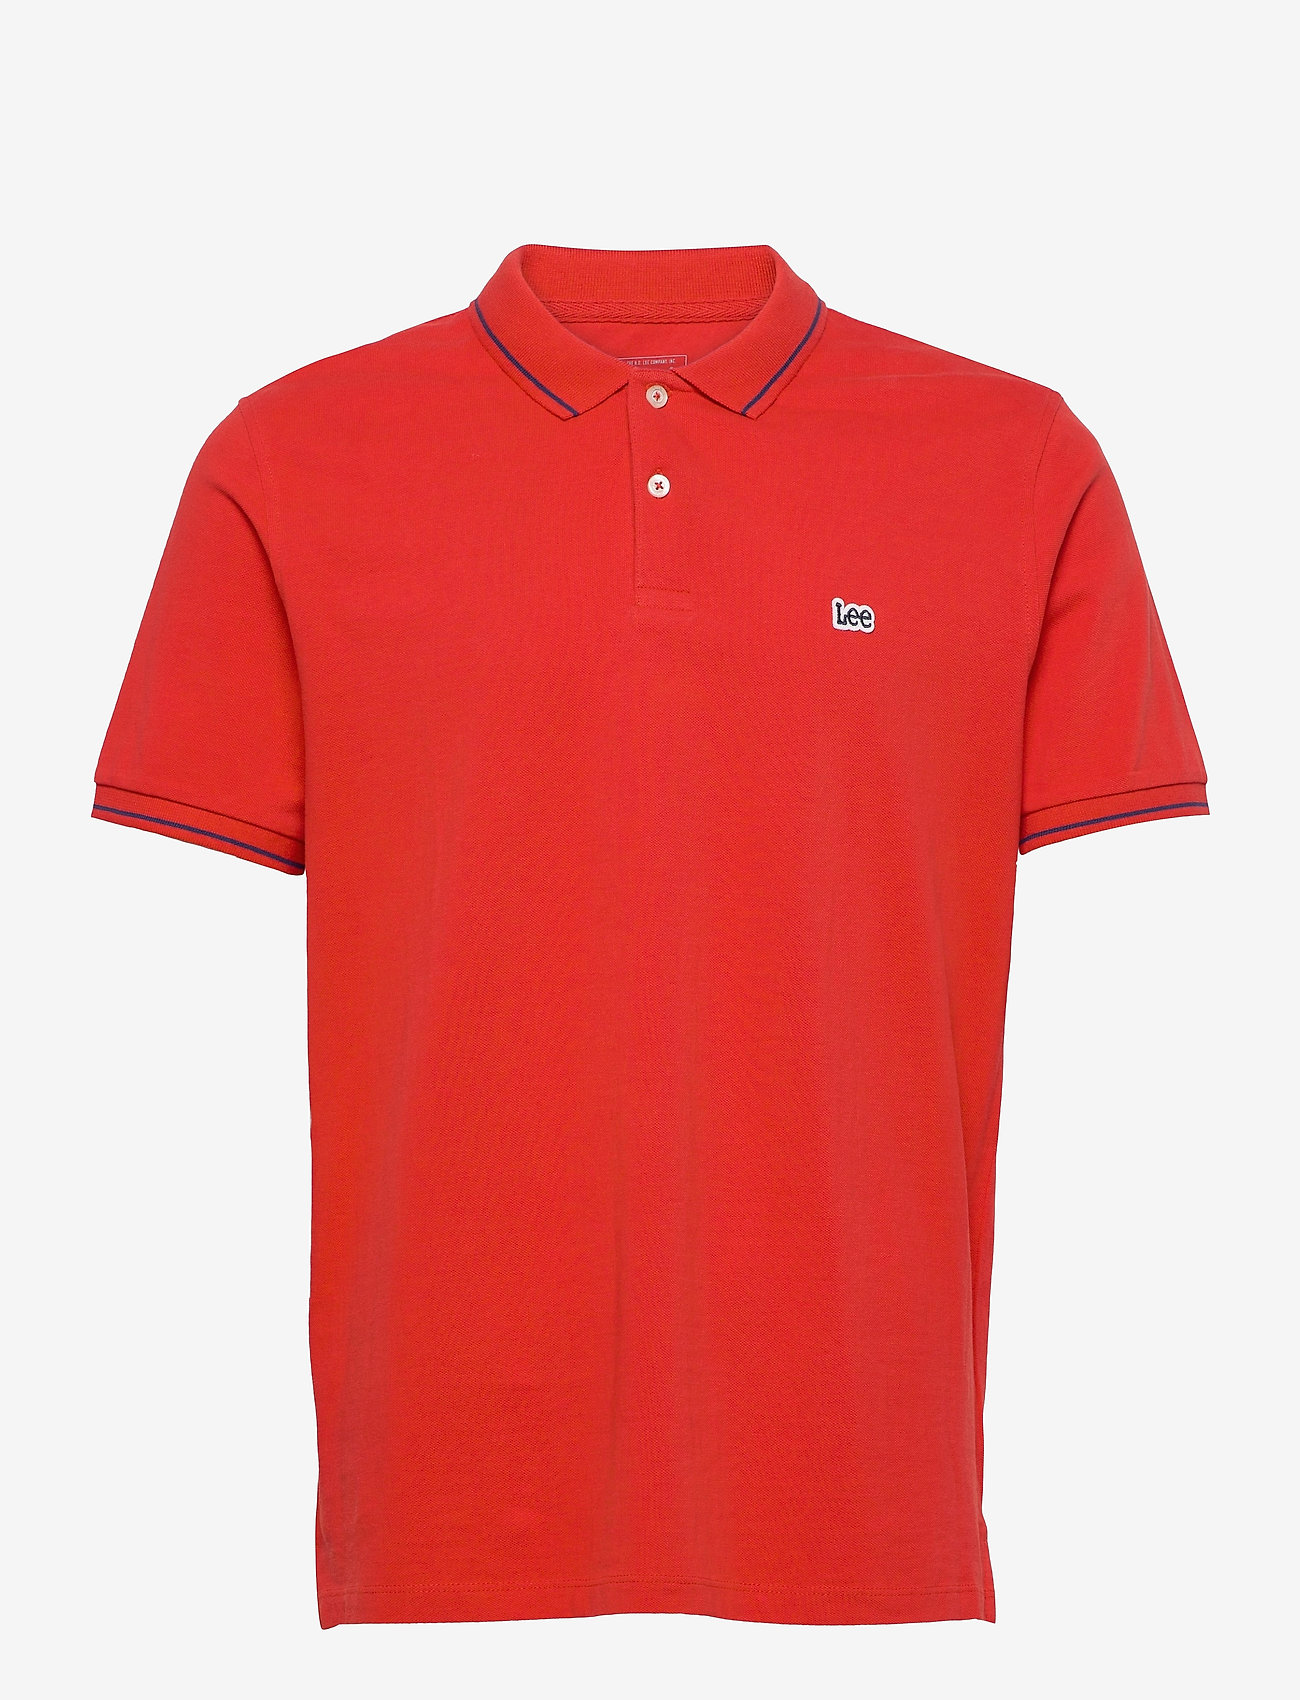 Lee Jeans - PIQUE POLO - short-sleeved polos - washed red - 0